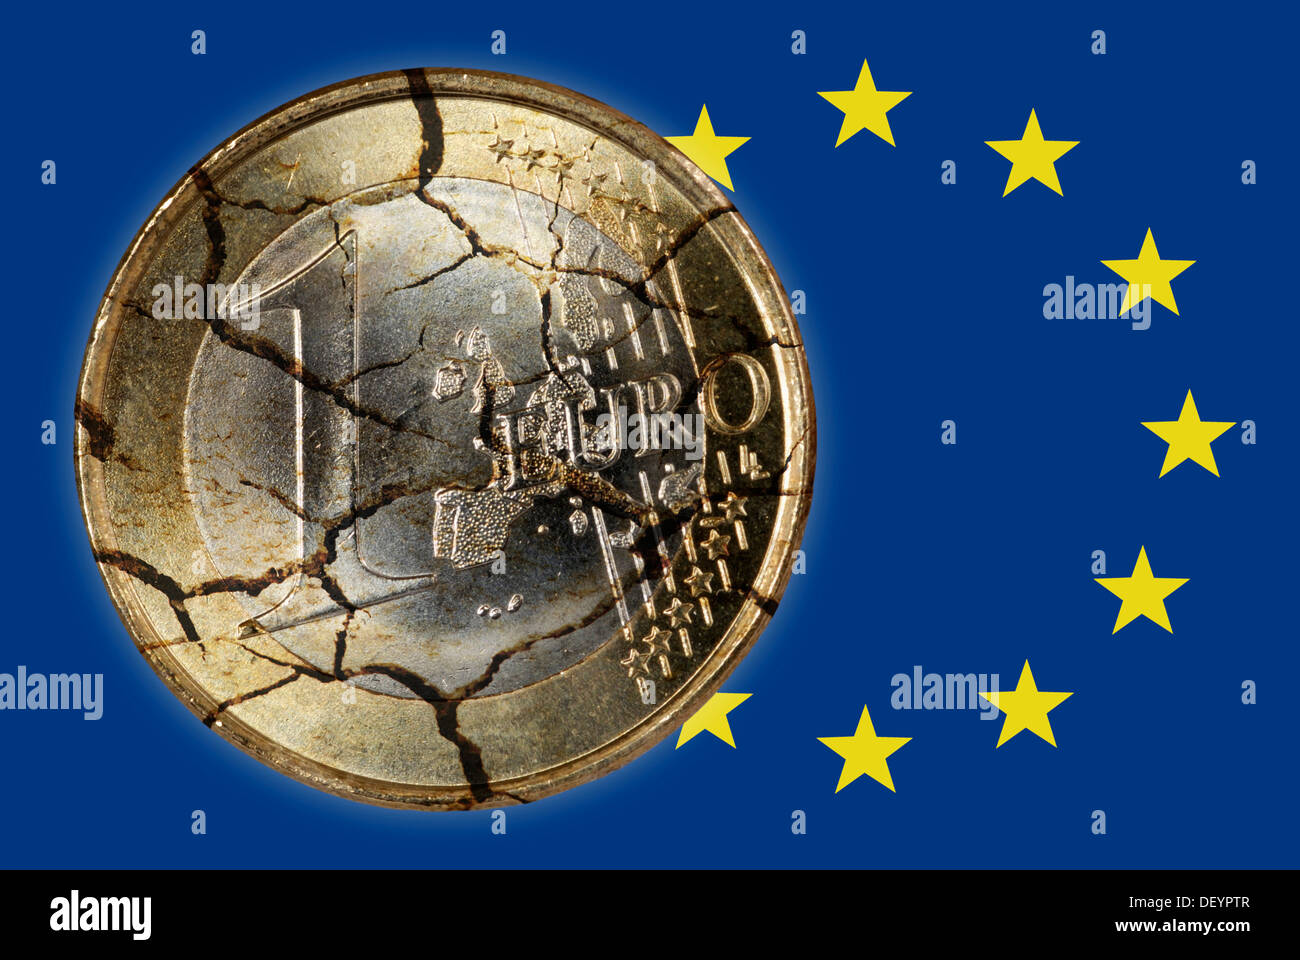 Euro coin in pieces and EU flag, symbolic image for debt crisis in Europe - Stock Image